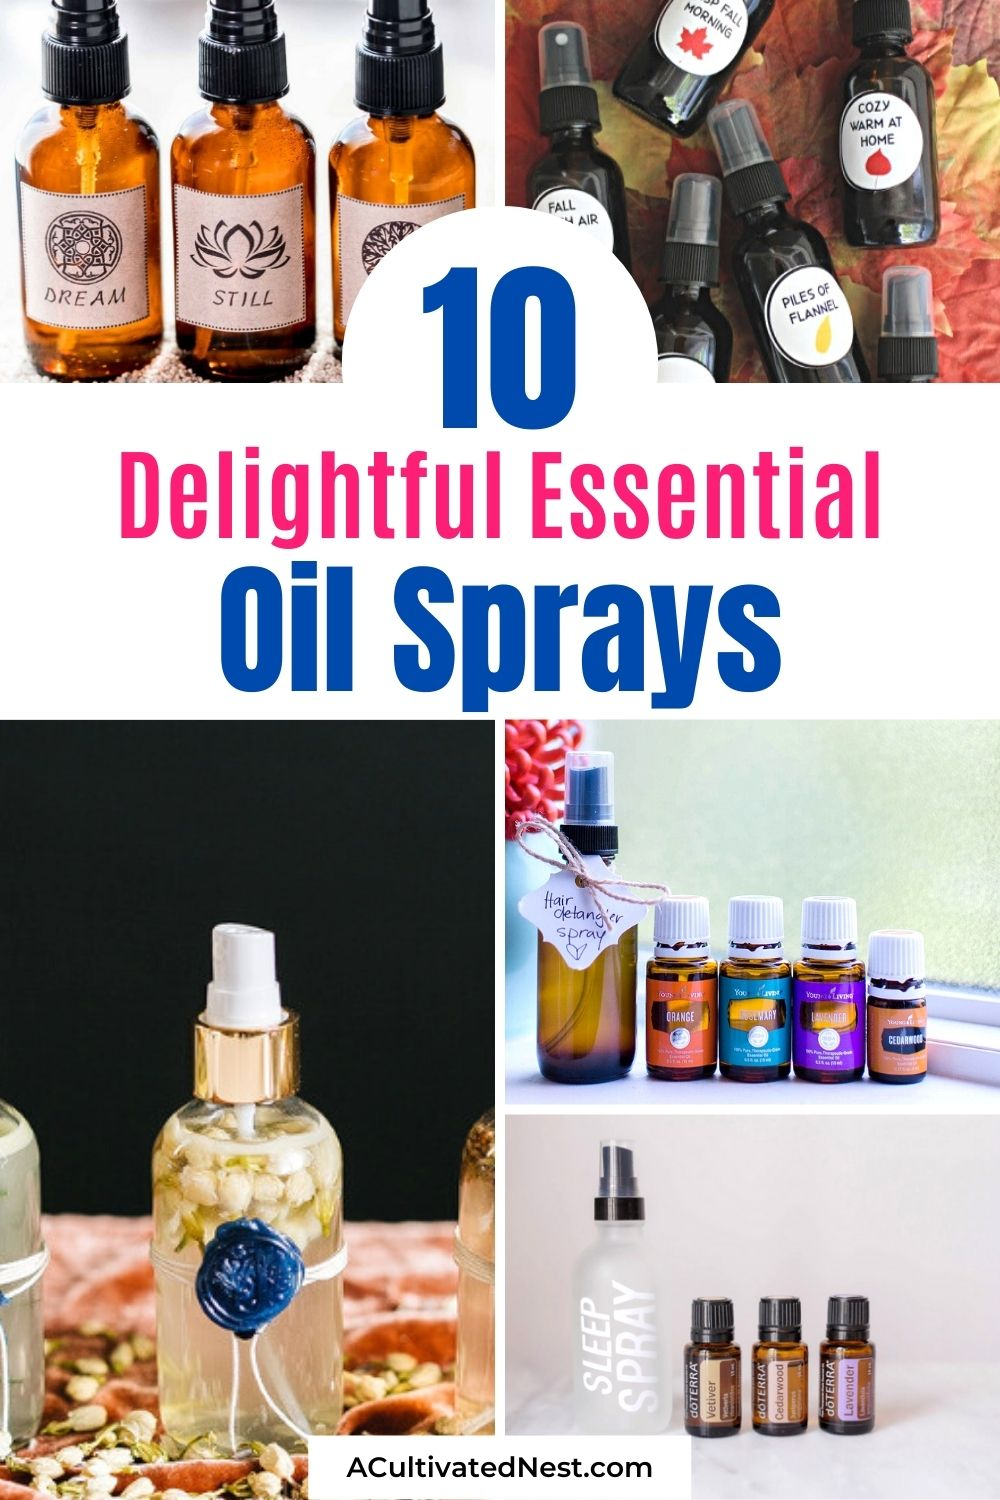 10 Delightful DIY Essential Oil Sprays- If you prefer to know what's in the sprays you use in your home or in your beauty regimen, then you'll love these delightful DIY essential oil sprays!   room sprays, perfume sprays, sleep spray, homemade gift, DIY gift ideas, #essentialOil #homemadePerfume #diyPerfume #DIY #ACultivatedNest